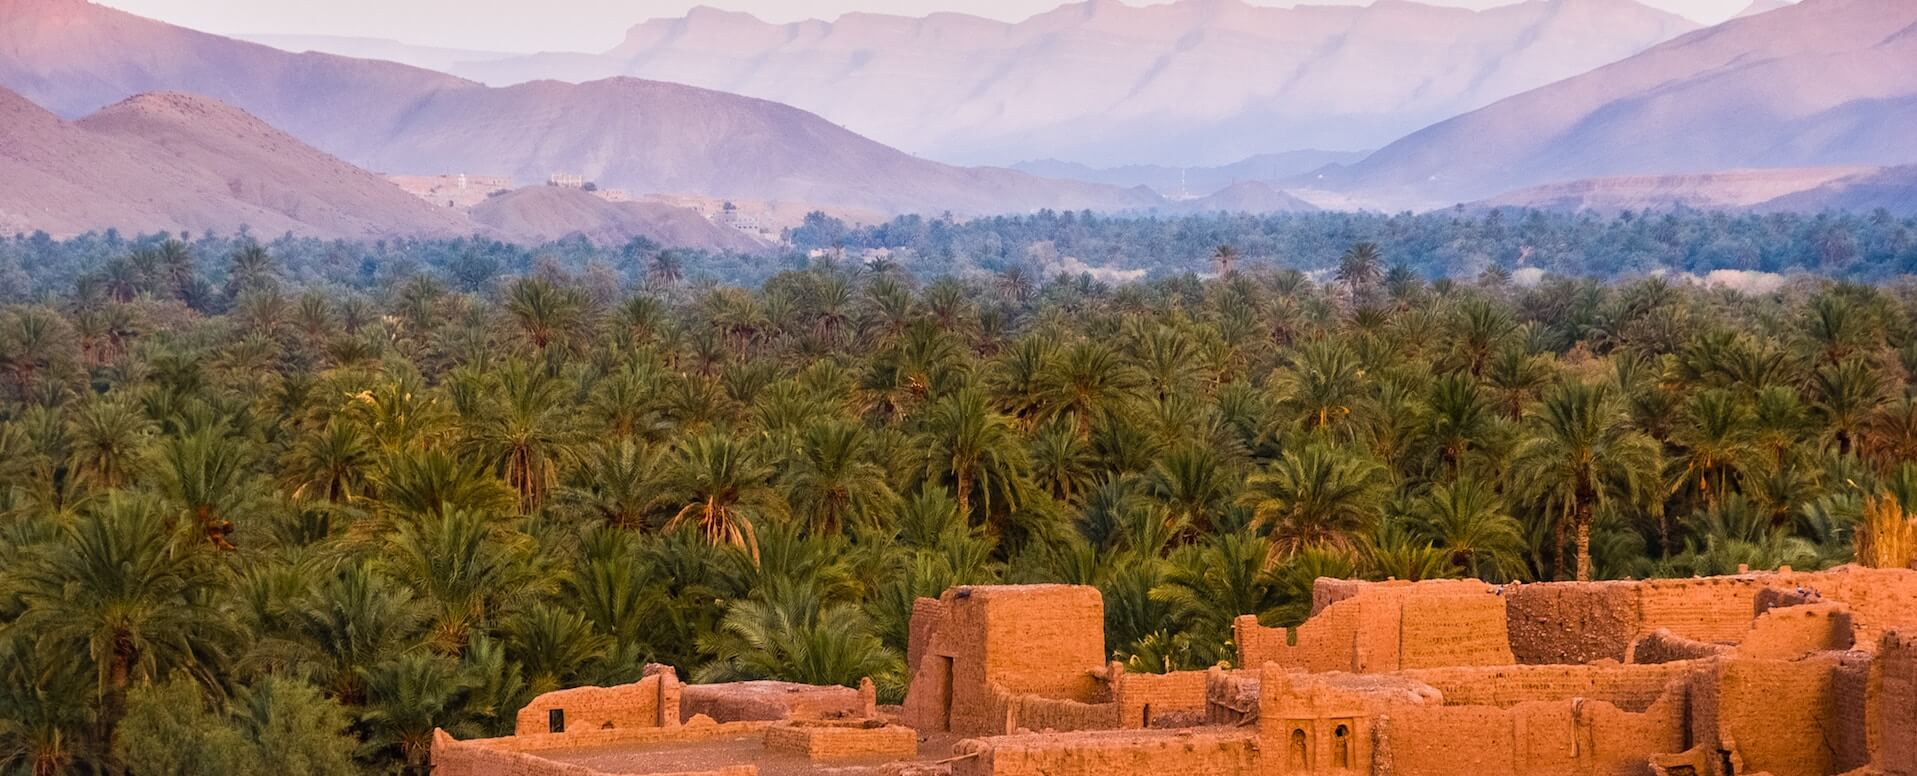 Weather and Climate in Morocco - Morocco